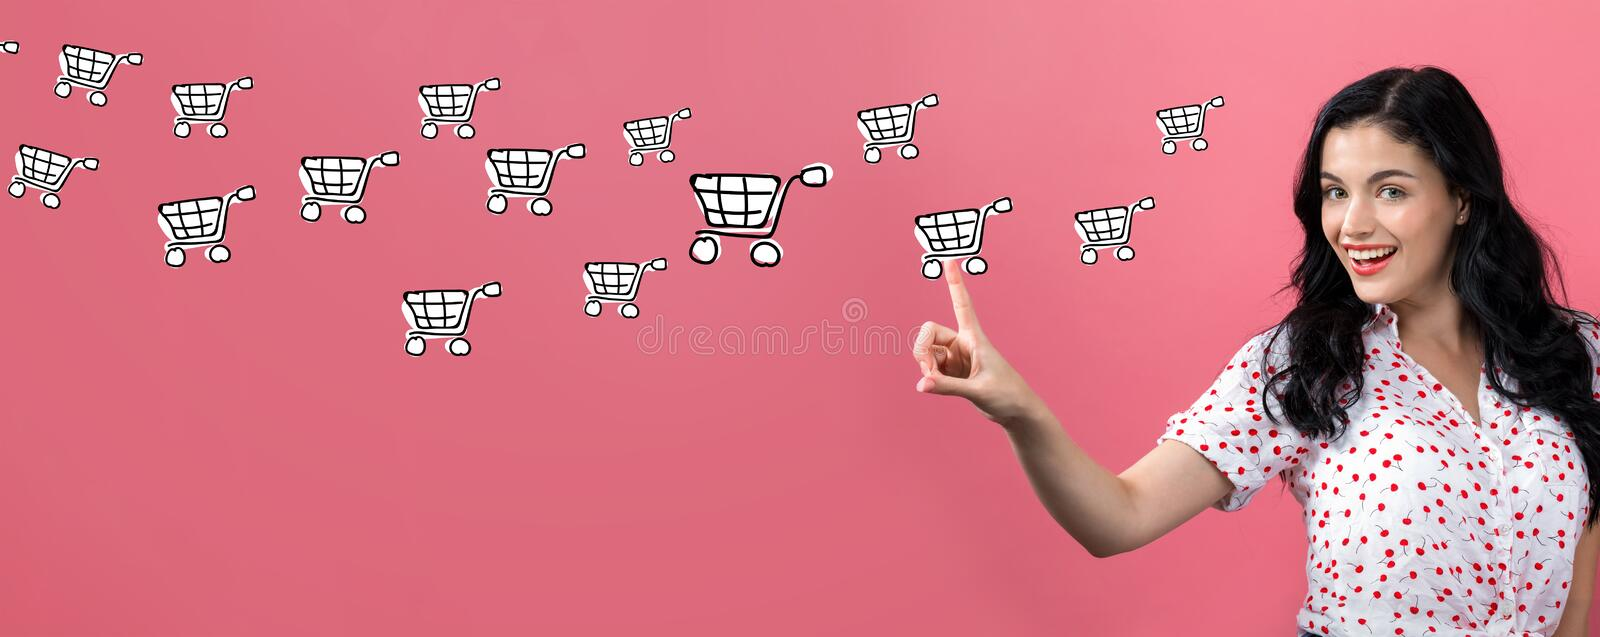 Online shopping with young woman royalty free stock image